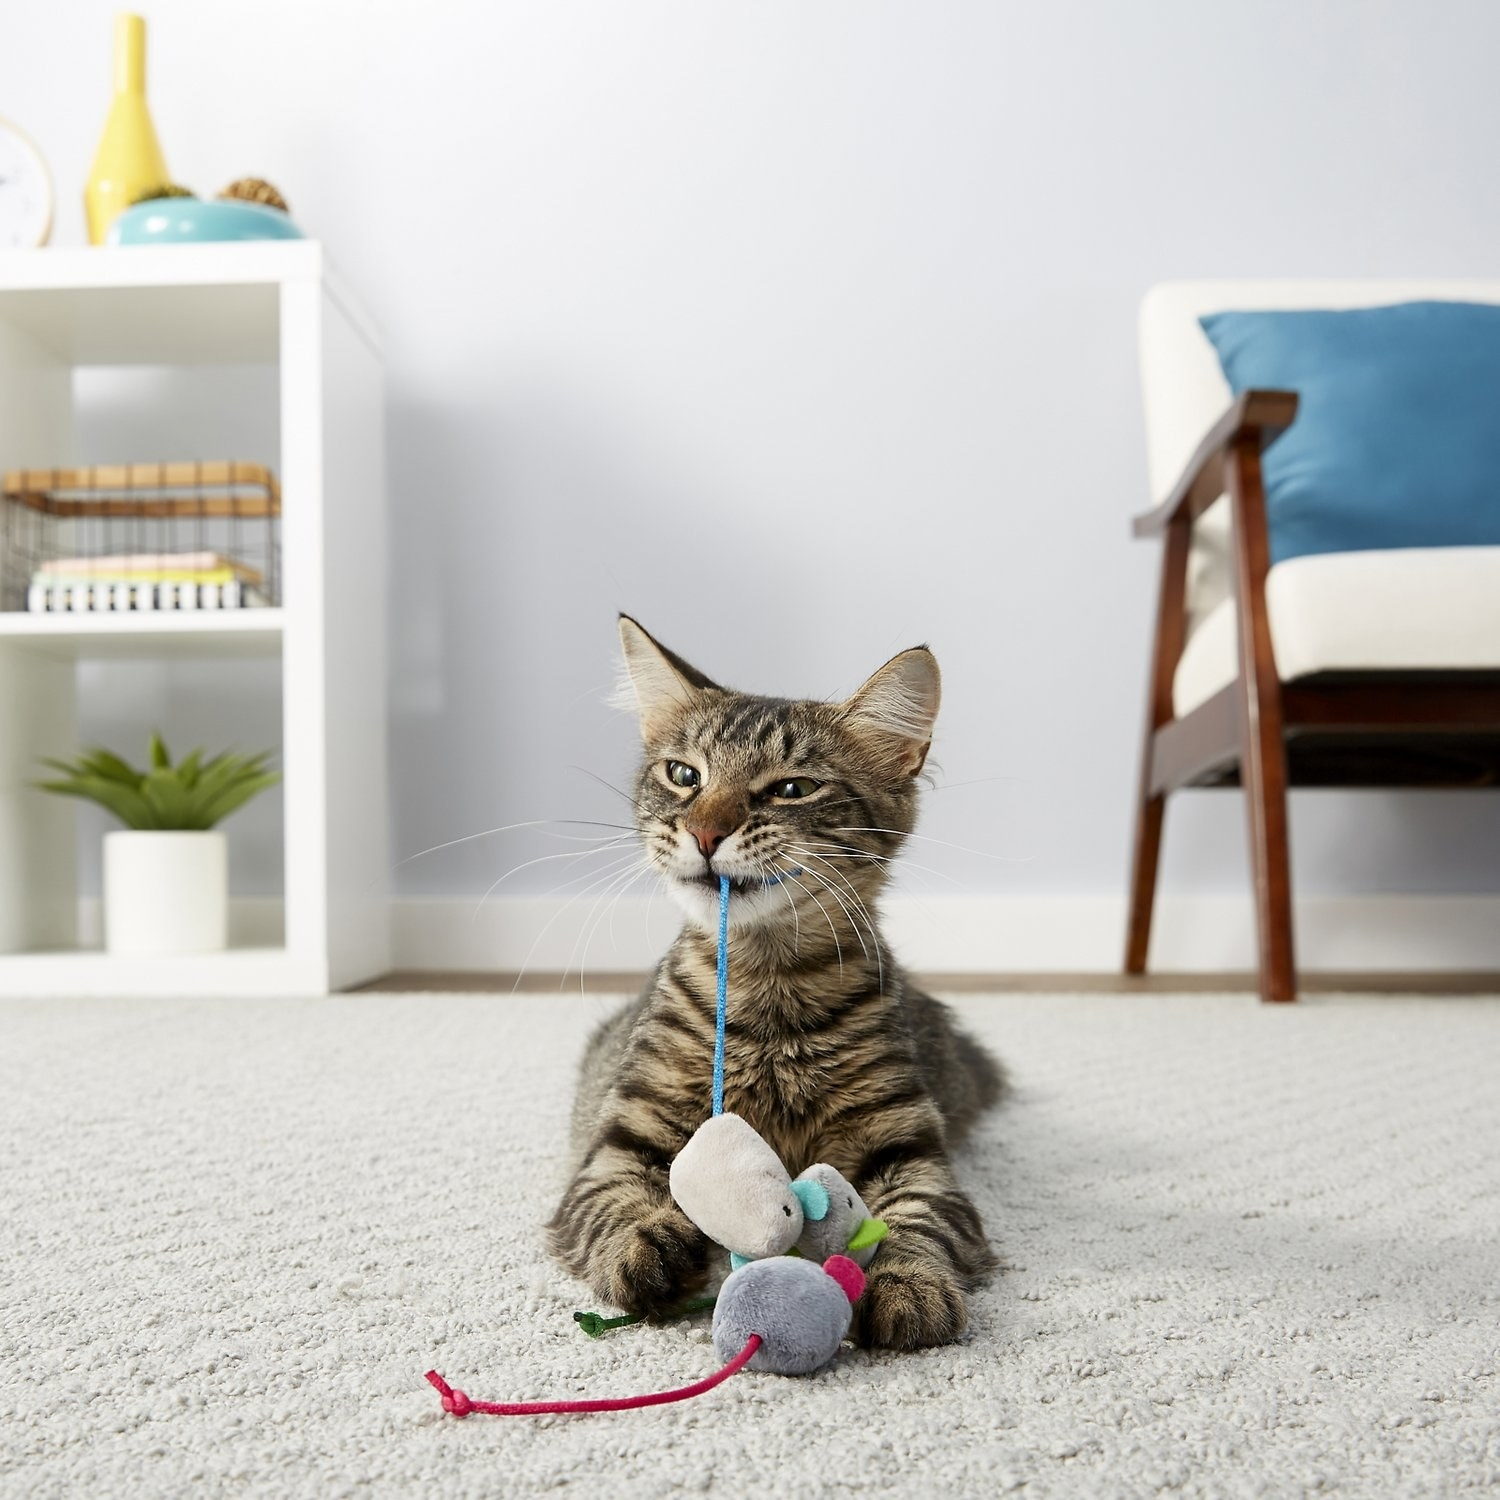 A cat playing with the mice toys